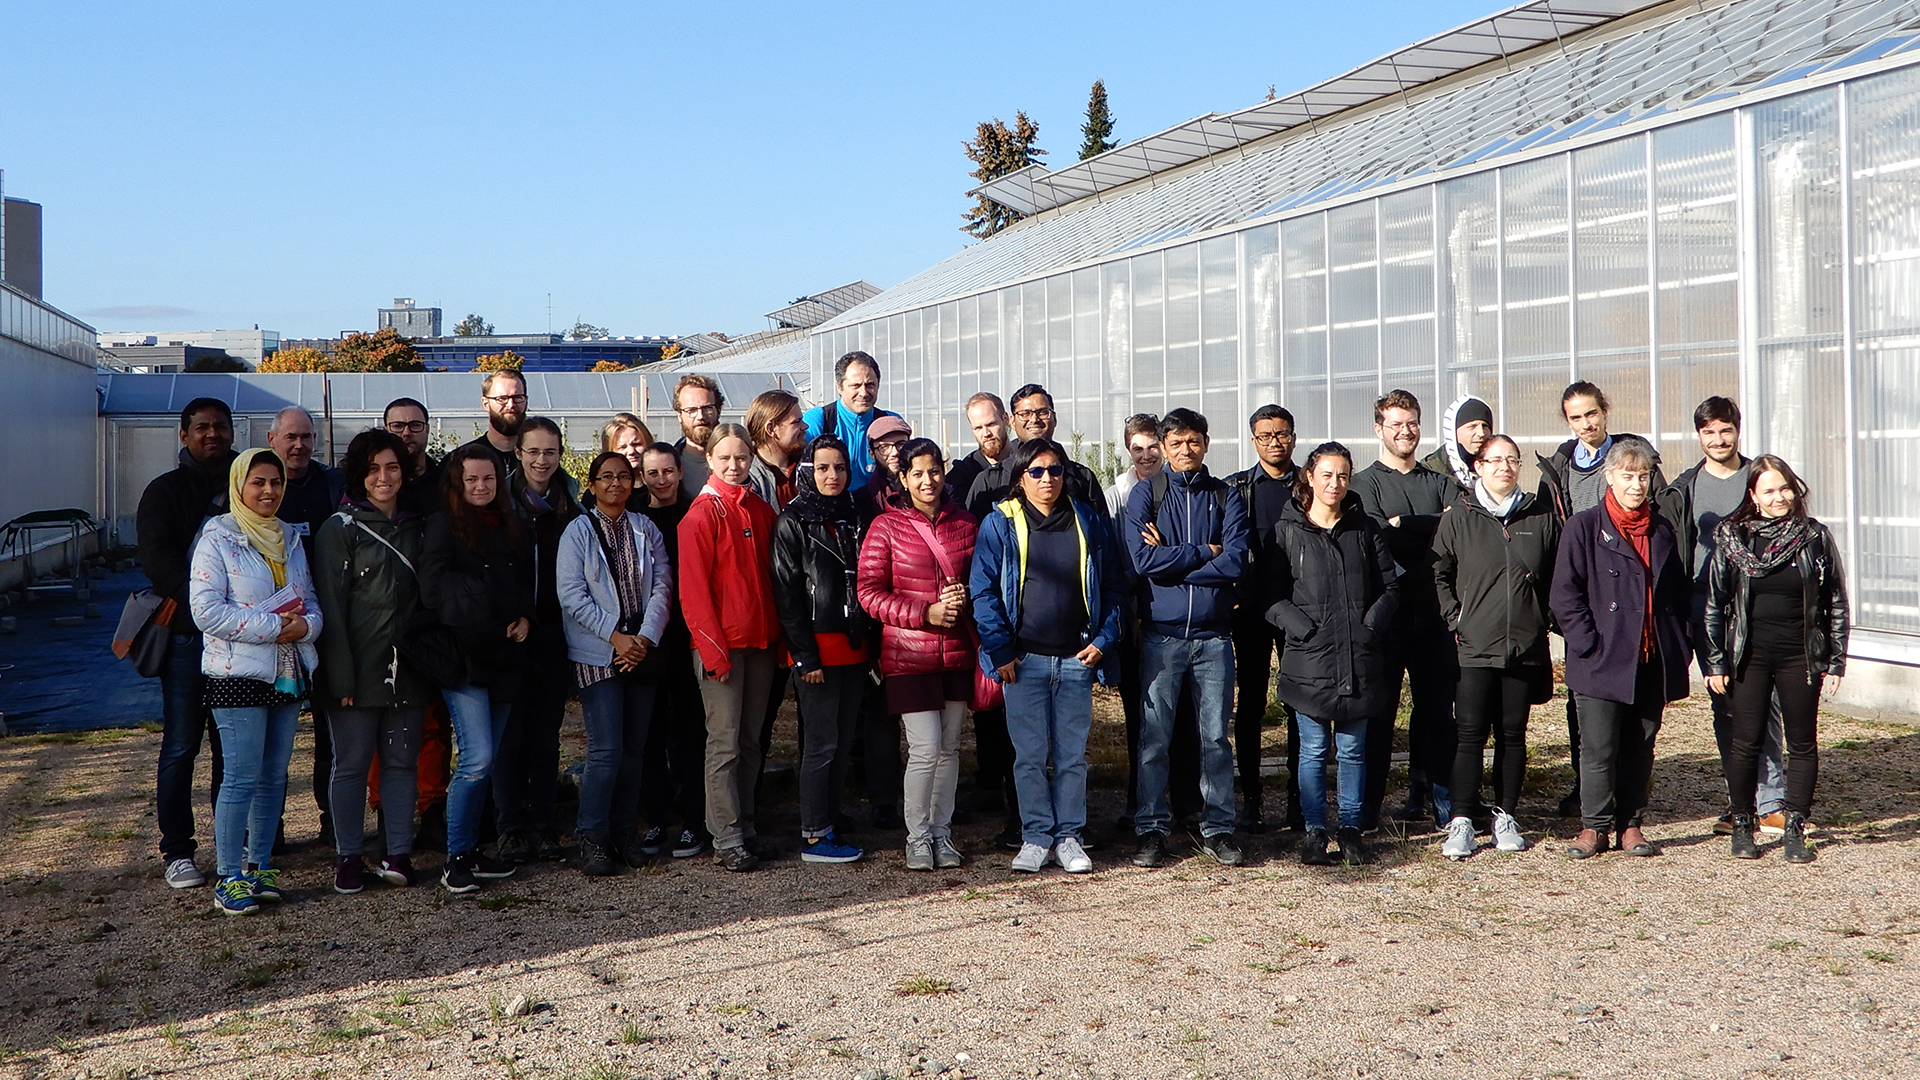 UPSC meets ViPS - group picture with the visiting PhD students and postdocs from UPSC in front of the greenhouses at ViPS